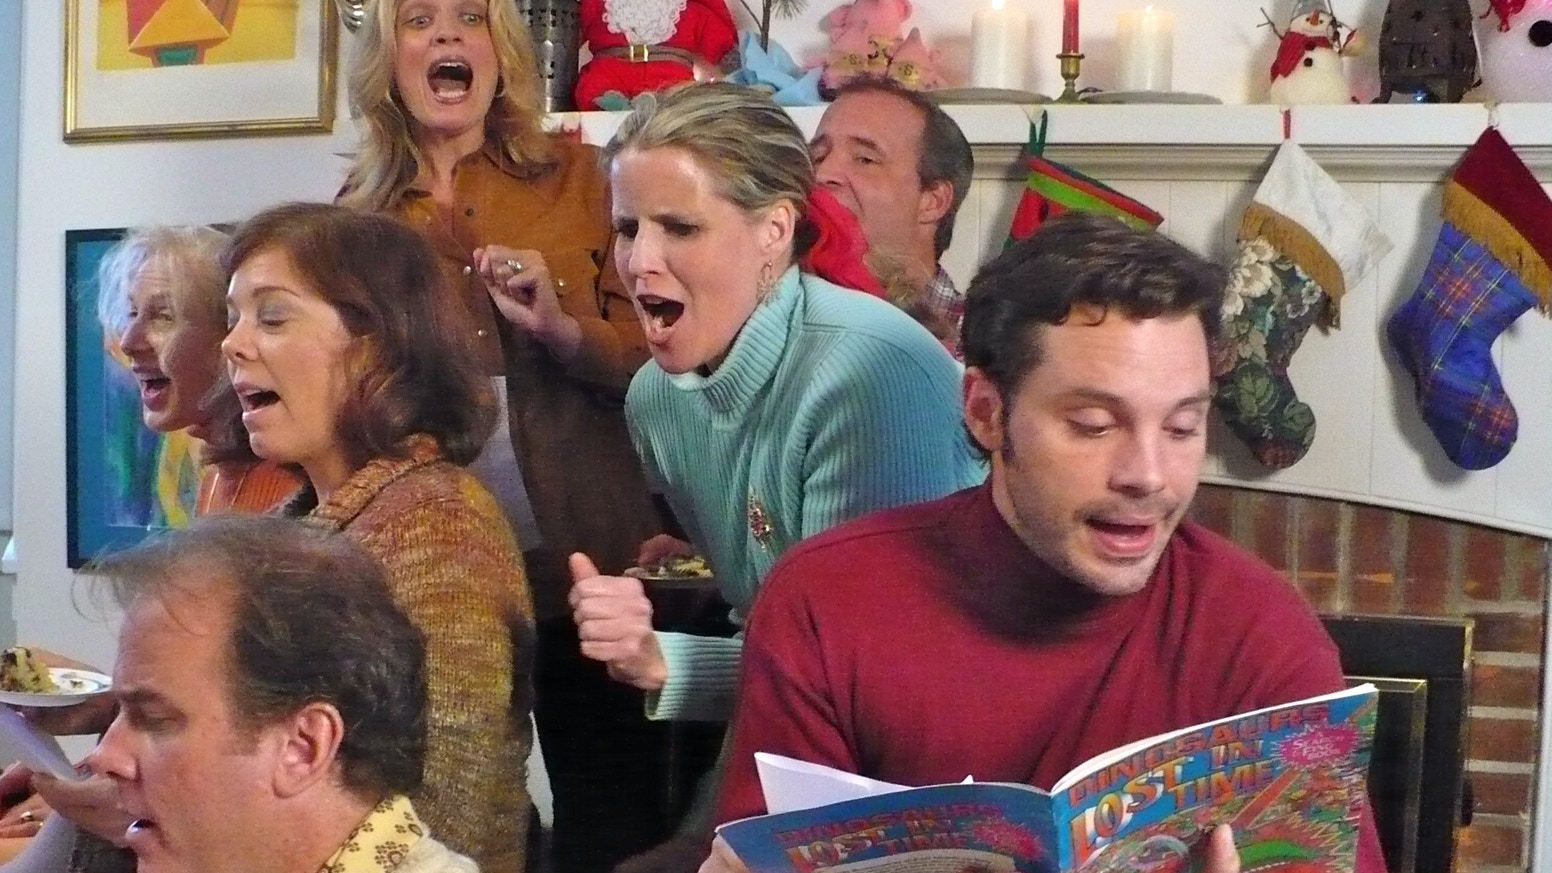 Seasons greetings woodstock ny by voicetheatre new york city seasons greetings a site specific comic romp thru the holidays by alan ayckbourn m4hsunfo